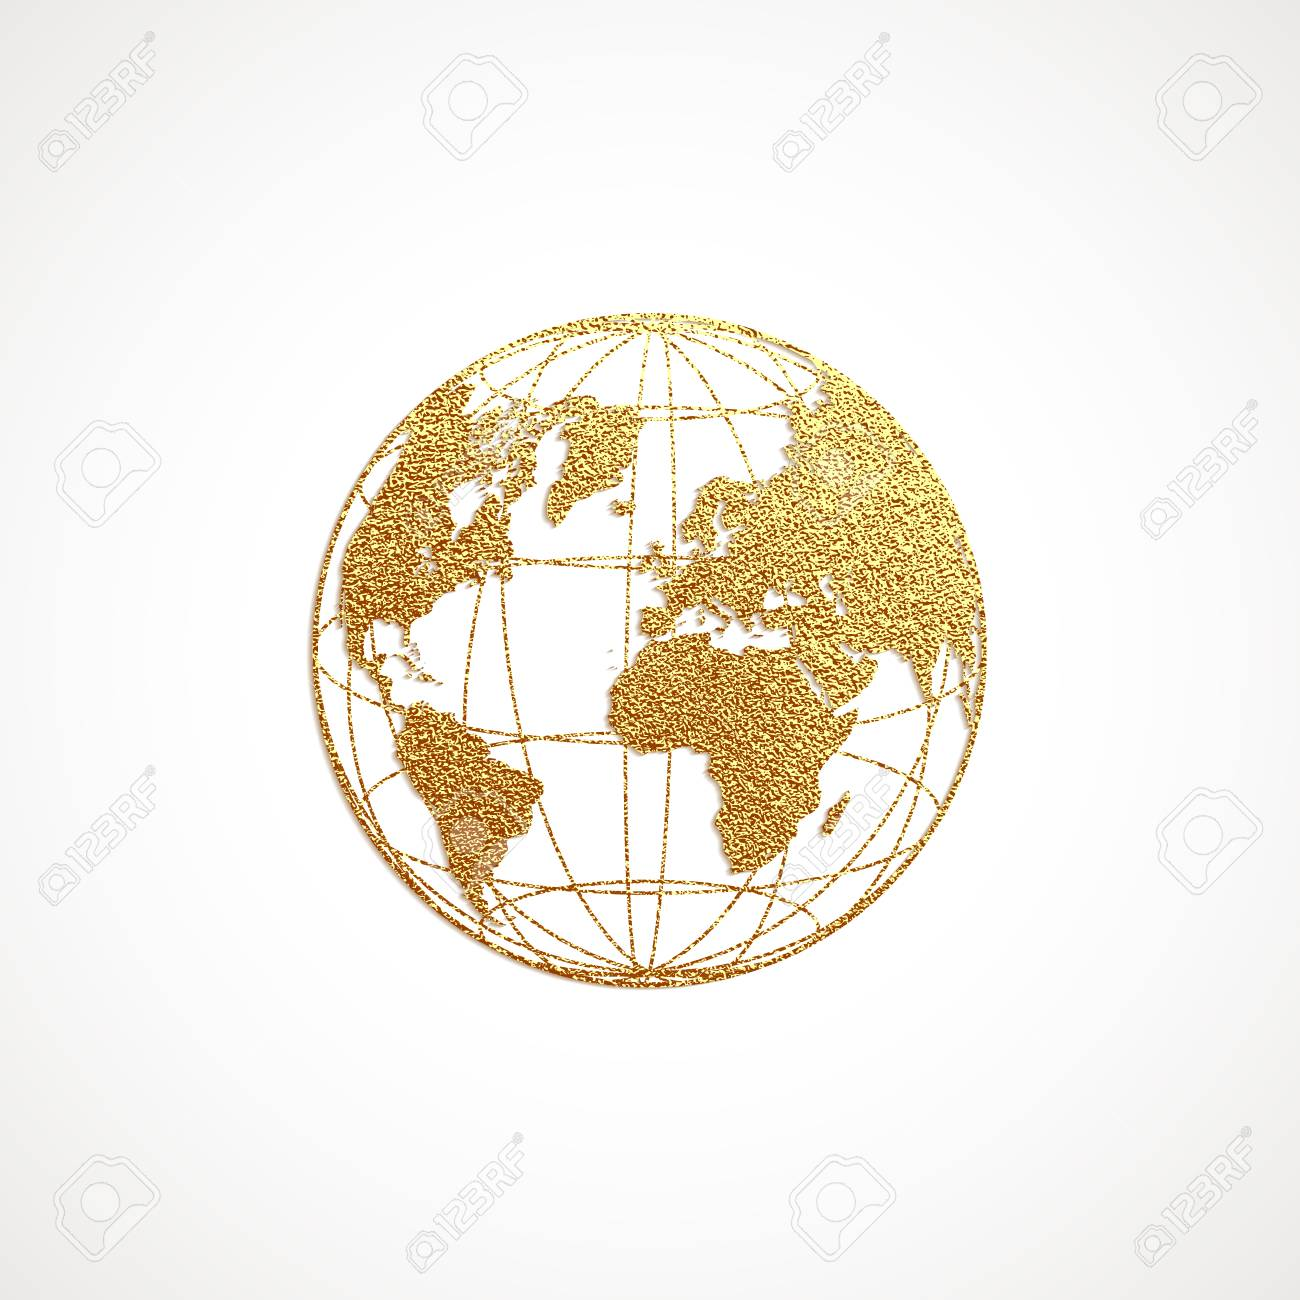 Creative gold map of the world vector illustration golden template creative gold map of the world vector illustration golden template design for media design gumiabroncs Image collections